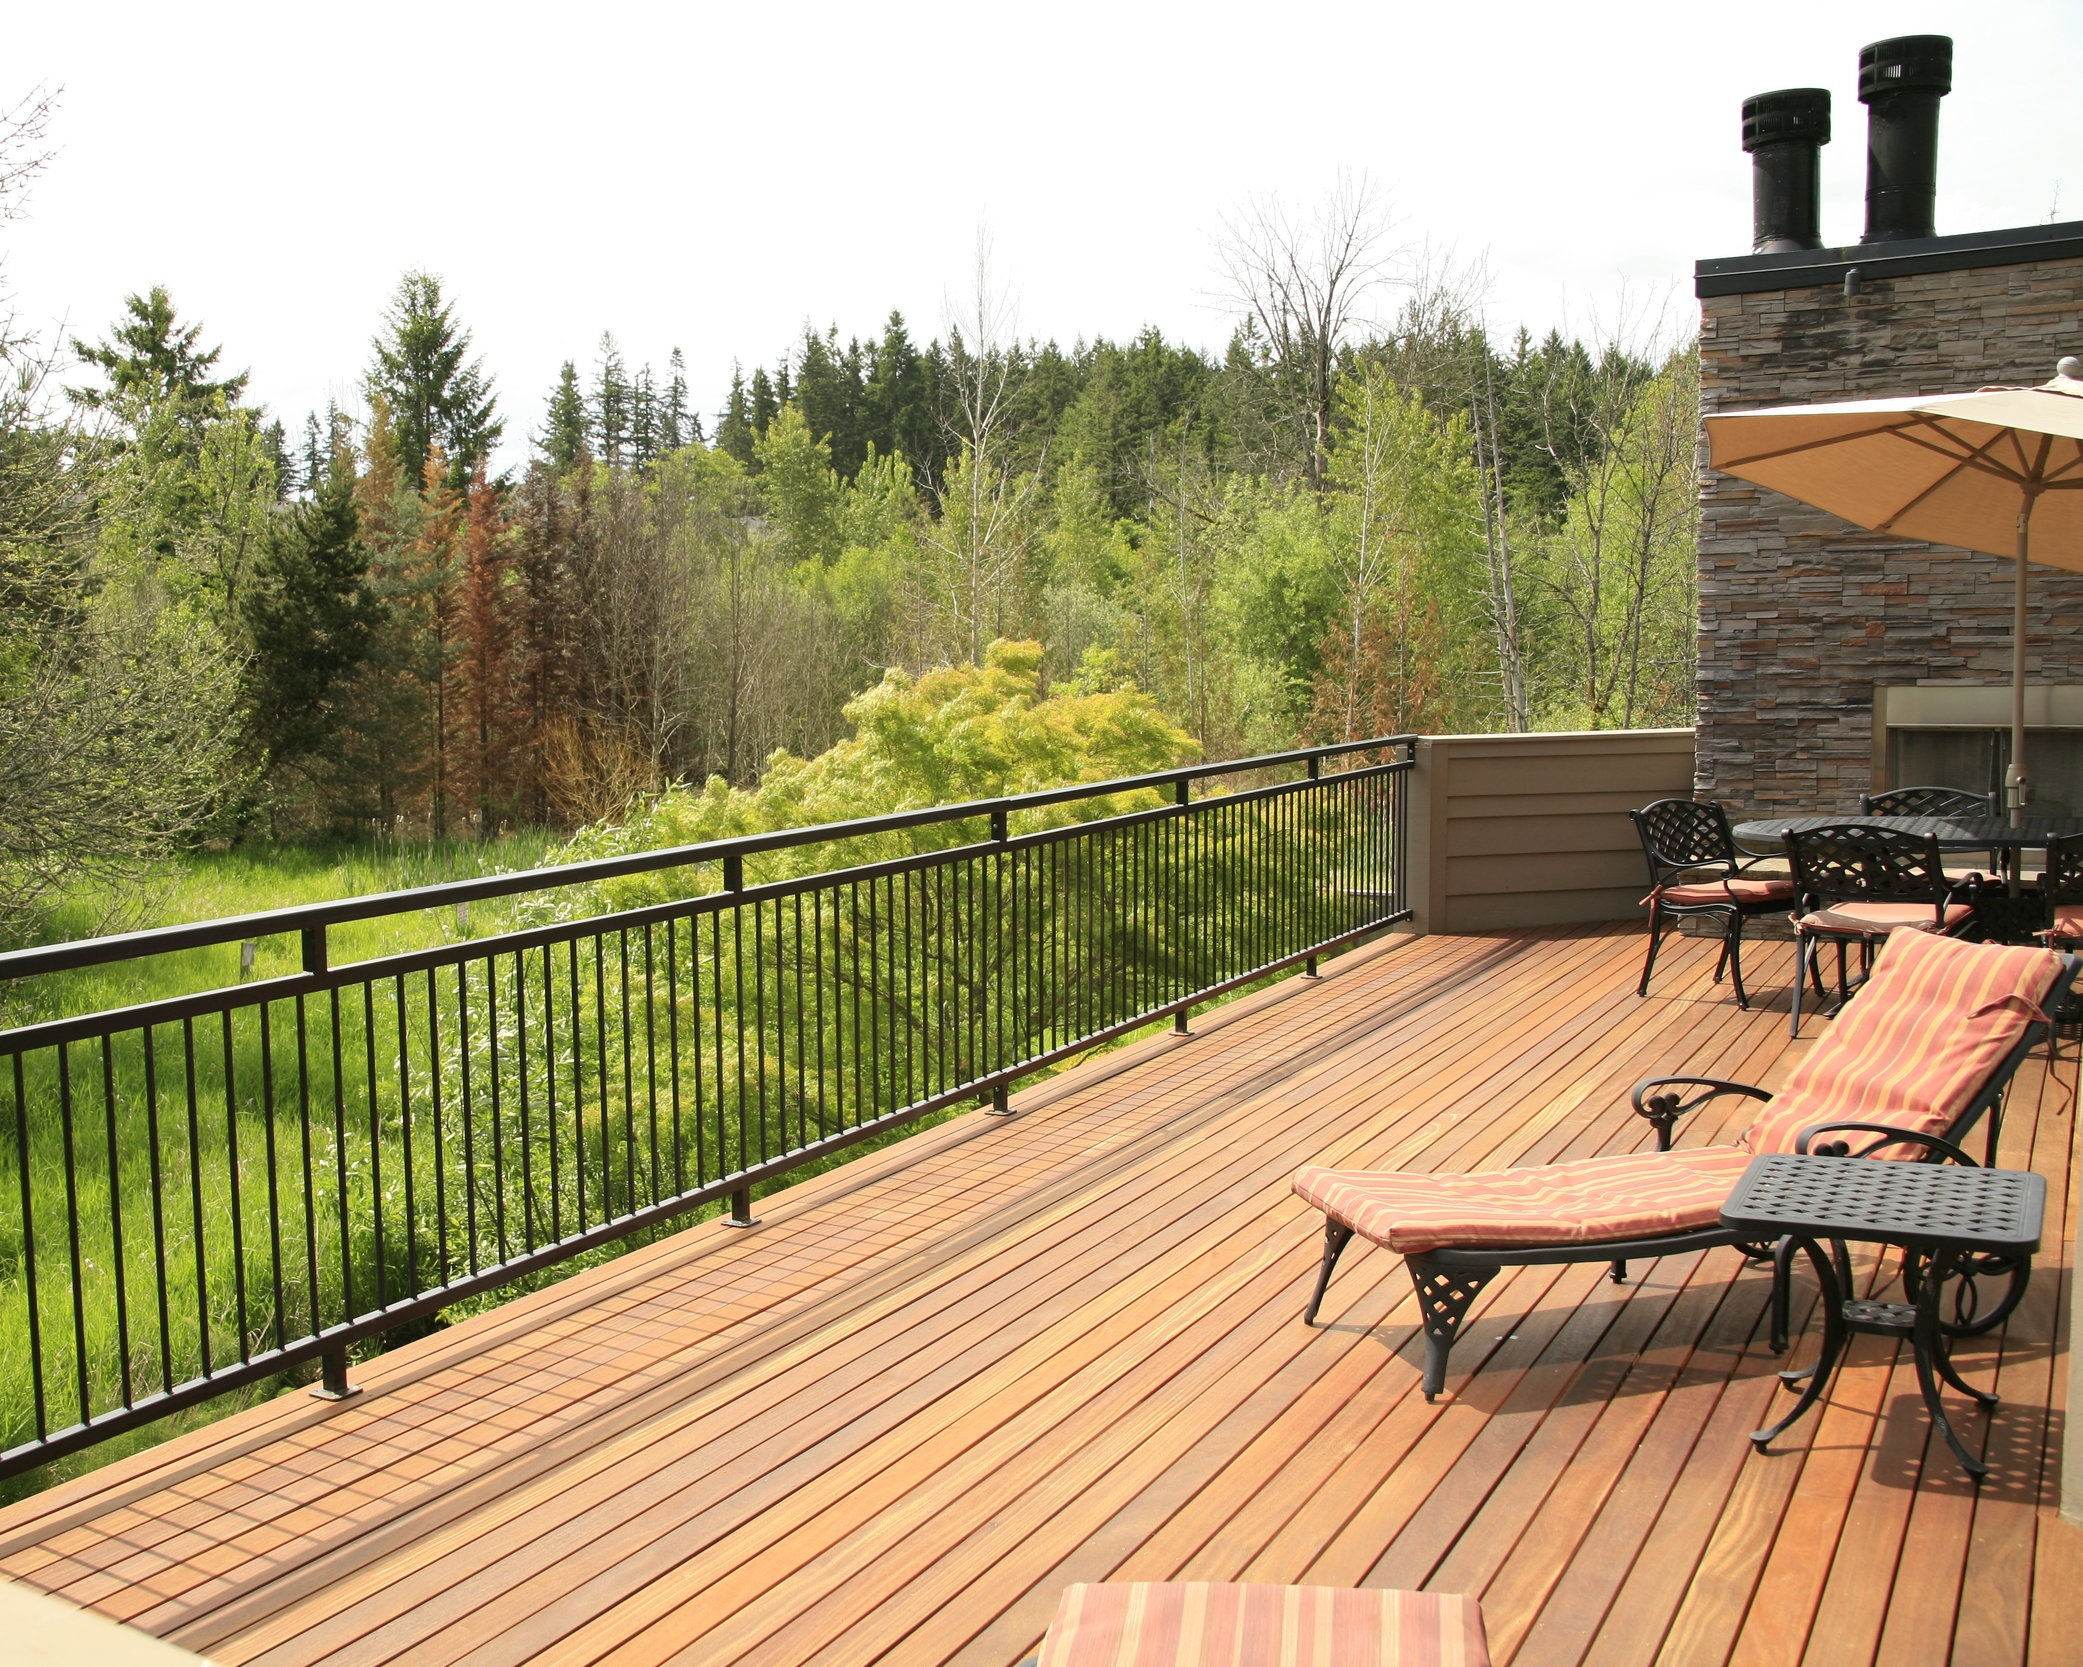 Hardwood Decking - Meranti Batu, Angelim Pedra, Ipe, Cumaru, Tigerwood and Massaranduba